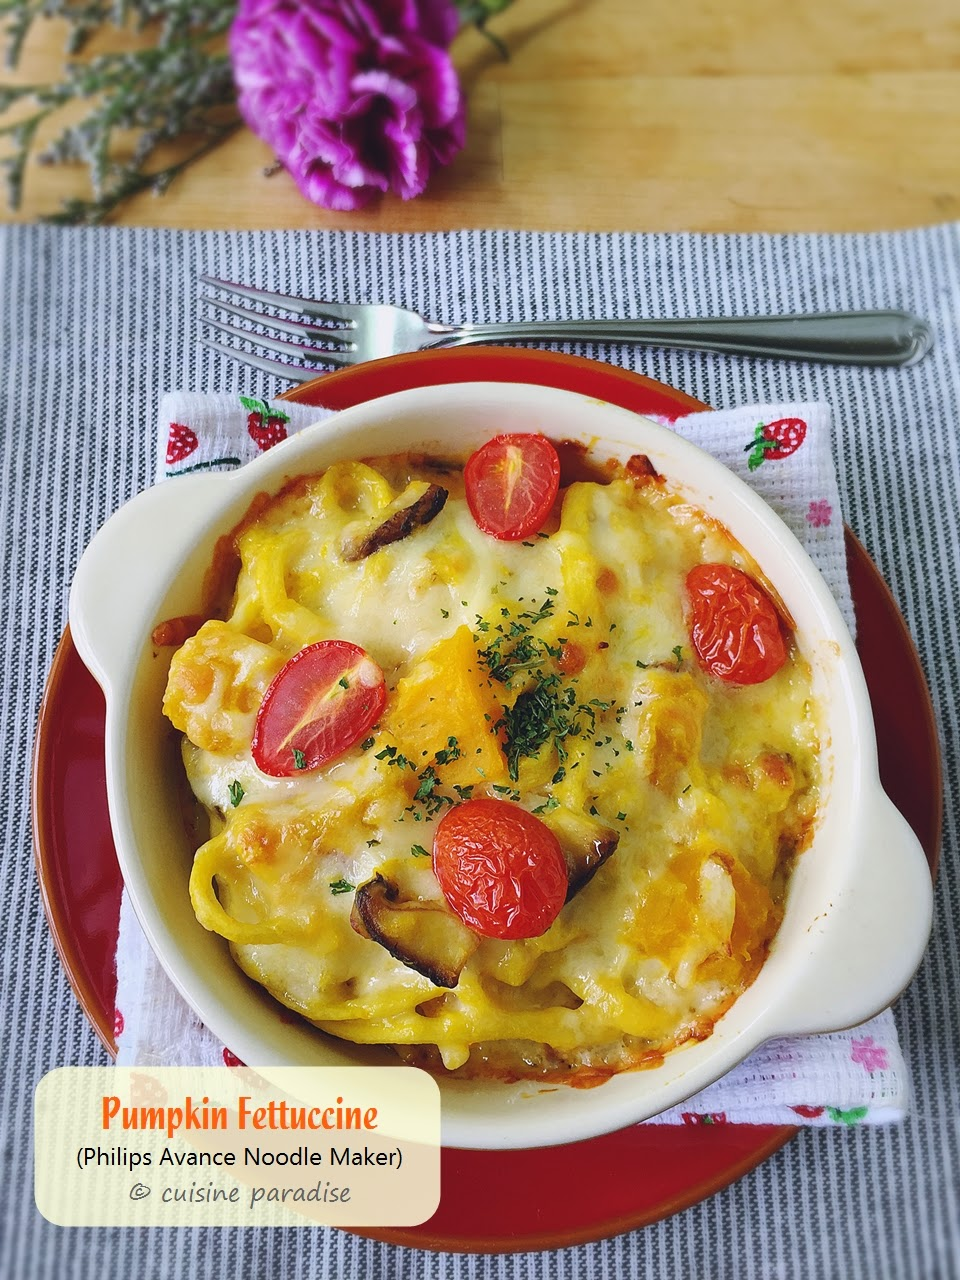 Cuisine paradise singapore food blog recipes reviews and travel baked pumpkin fettuccine forumfinder Gallery